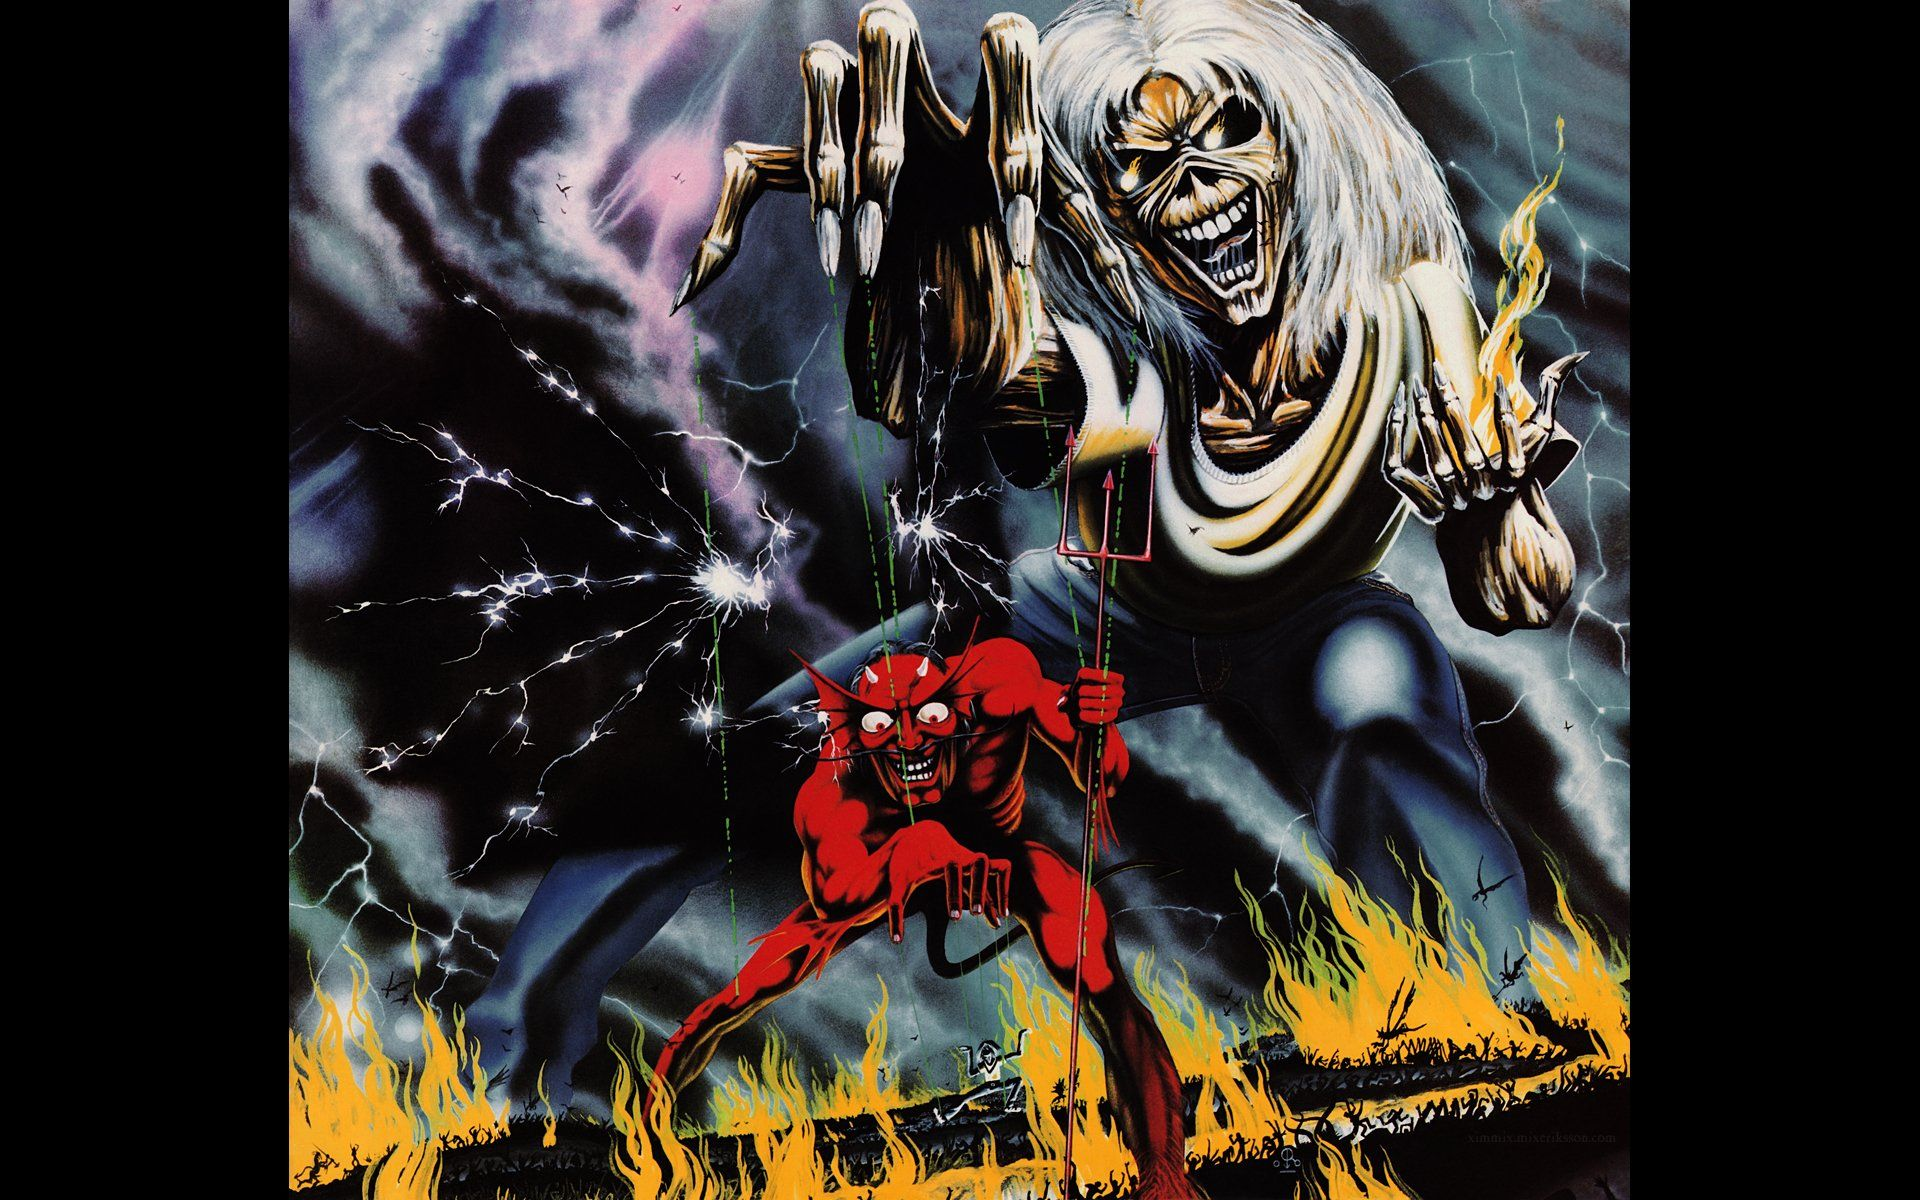 Iron Maiden Number Of The Beast Wallpaper Phone Beast Wallpaper Iron Maiden The Trooper Phone Wallpaper